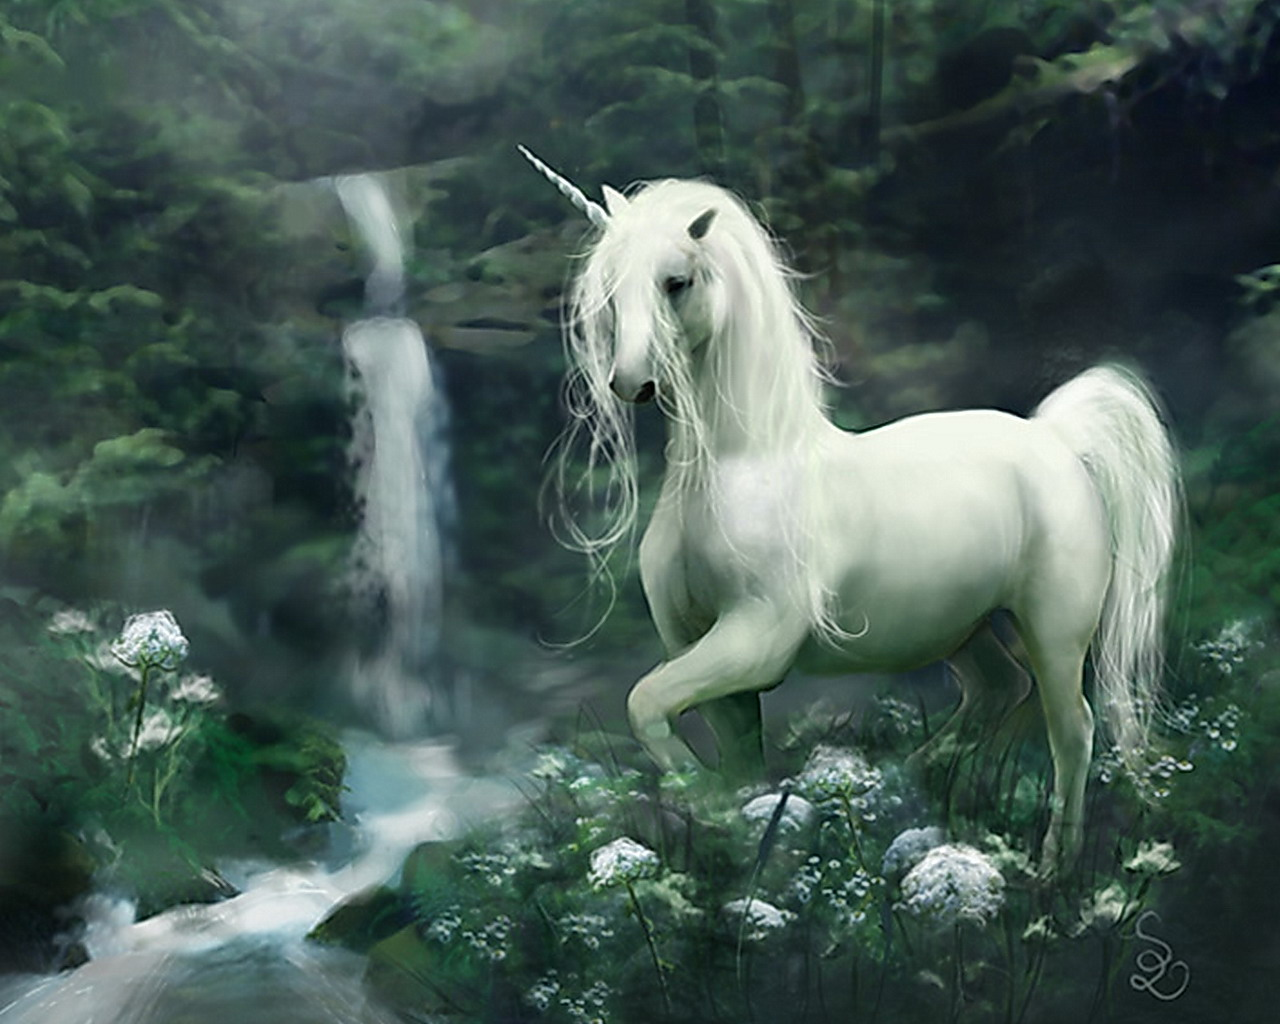 Beautiful Unicorn in a mystical fantasy world